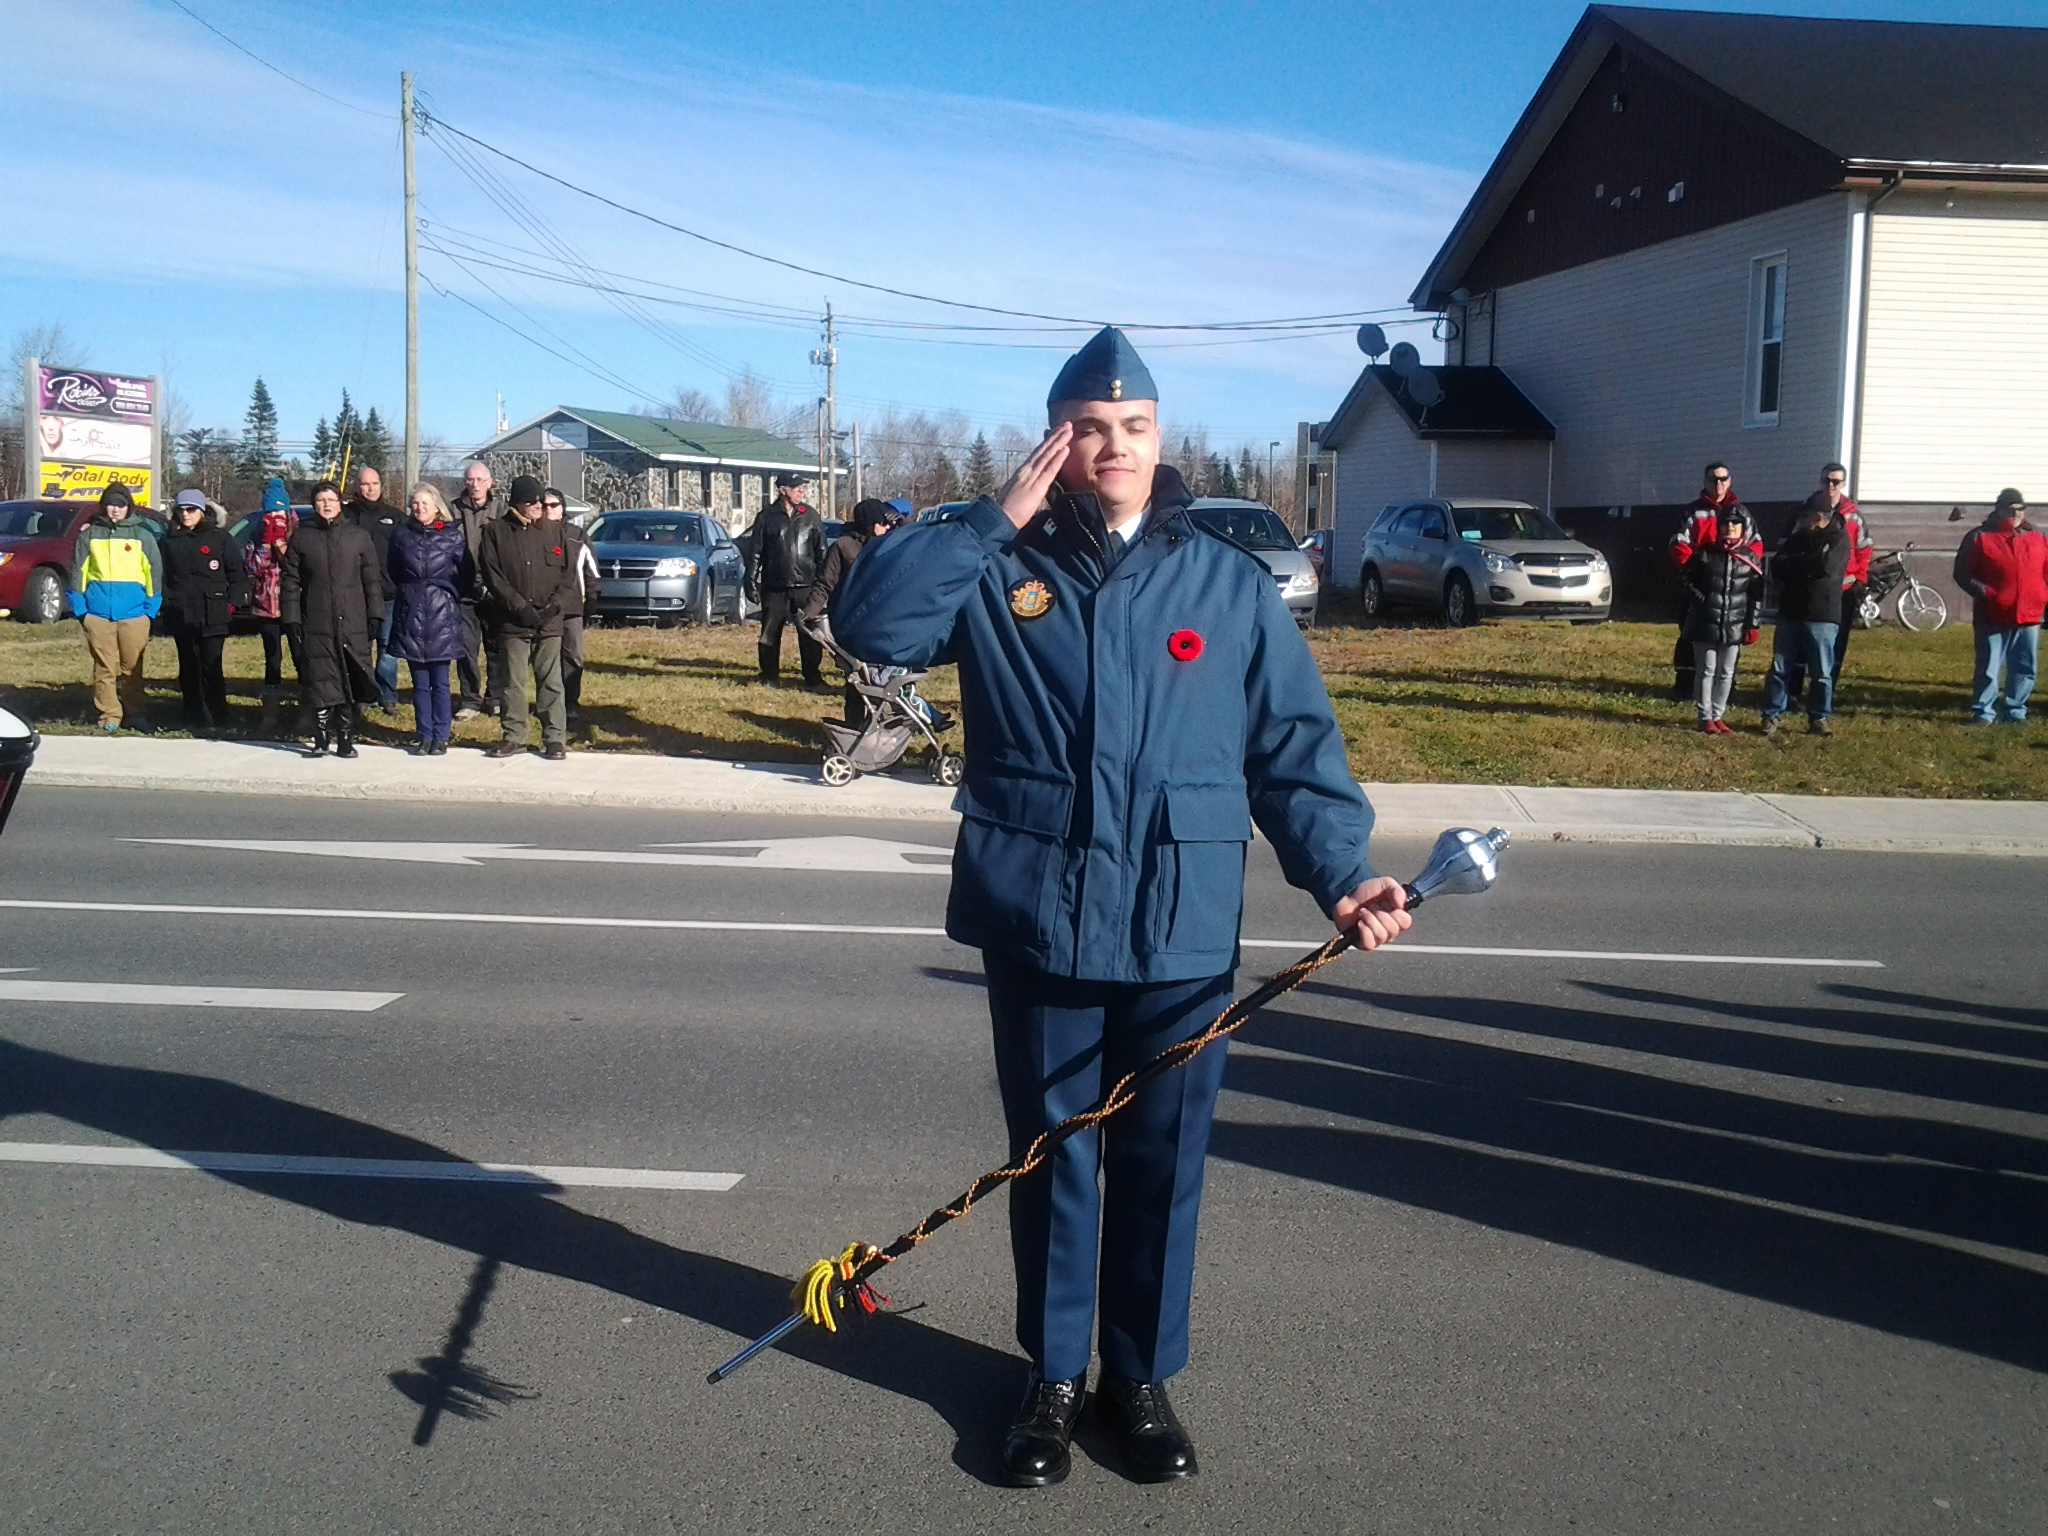 gander guys 101st airborne marks 30 years since gander plane crash killed 248 soldiers  was among 248 soldiers who lost their lives in a plane crash in gander  these guys.